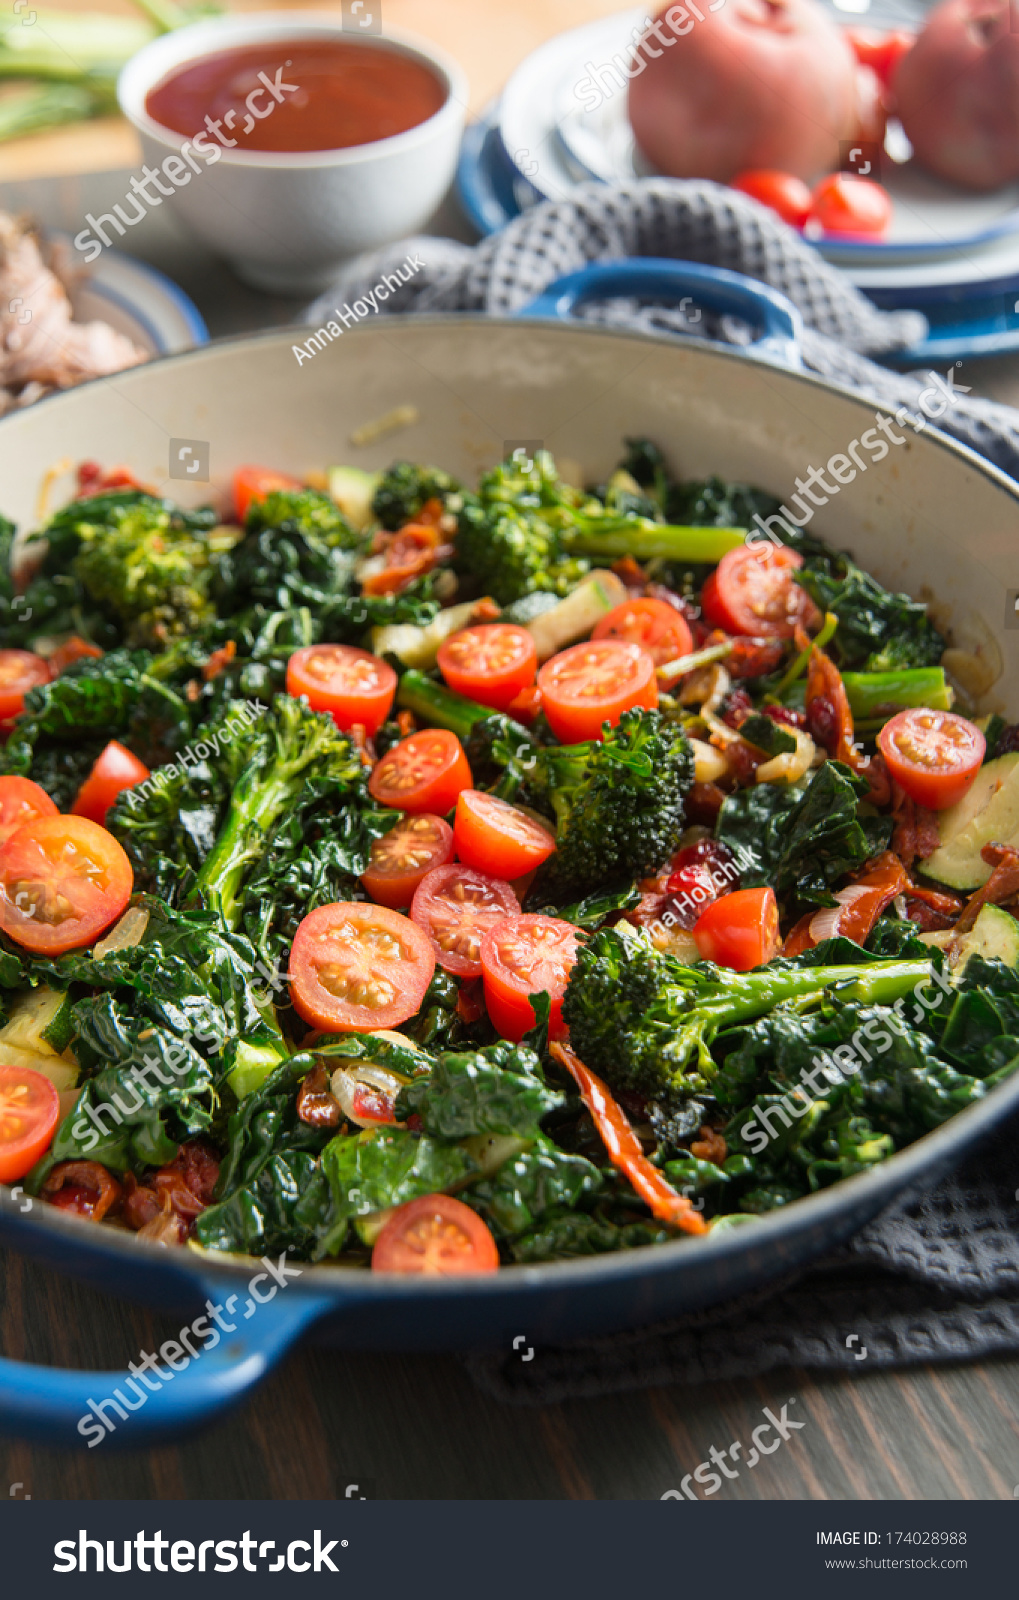 Wilted Kale, Broccoli, and Cherry Tomatoes